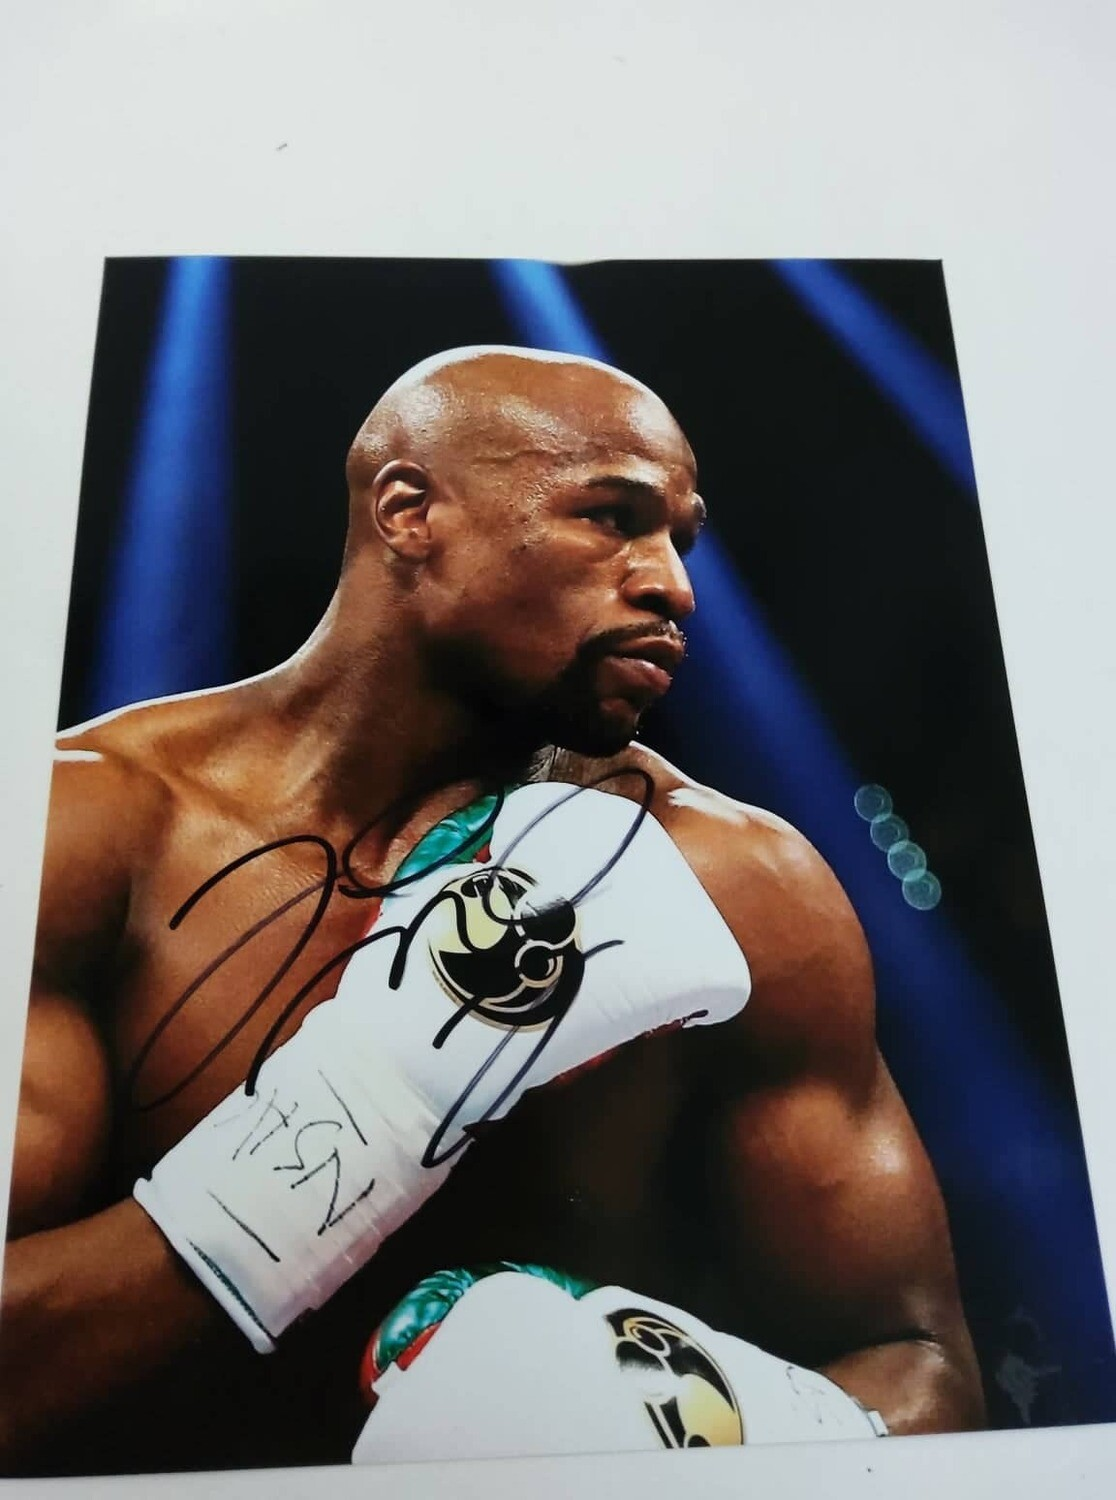 FOTO Floyd Mayweather Jr Autografata Signed + COA Photo Floyd Mayweather Jr Autografato Signed